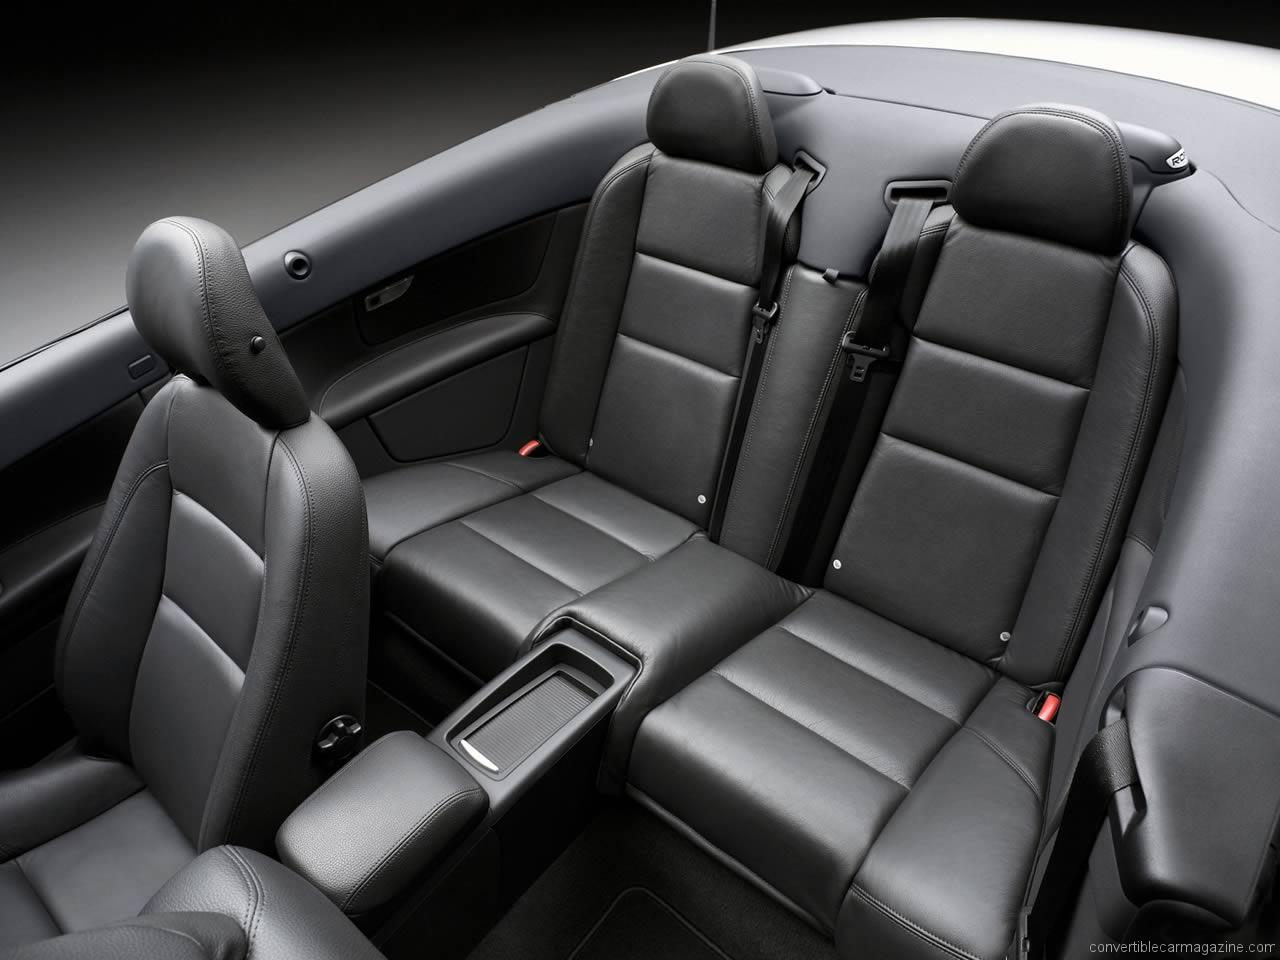 Pleasing Volvo C70 Convertible Buying Guide Alphanode Cool Chair Designs And Ideas Alphanodeonline